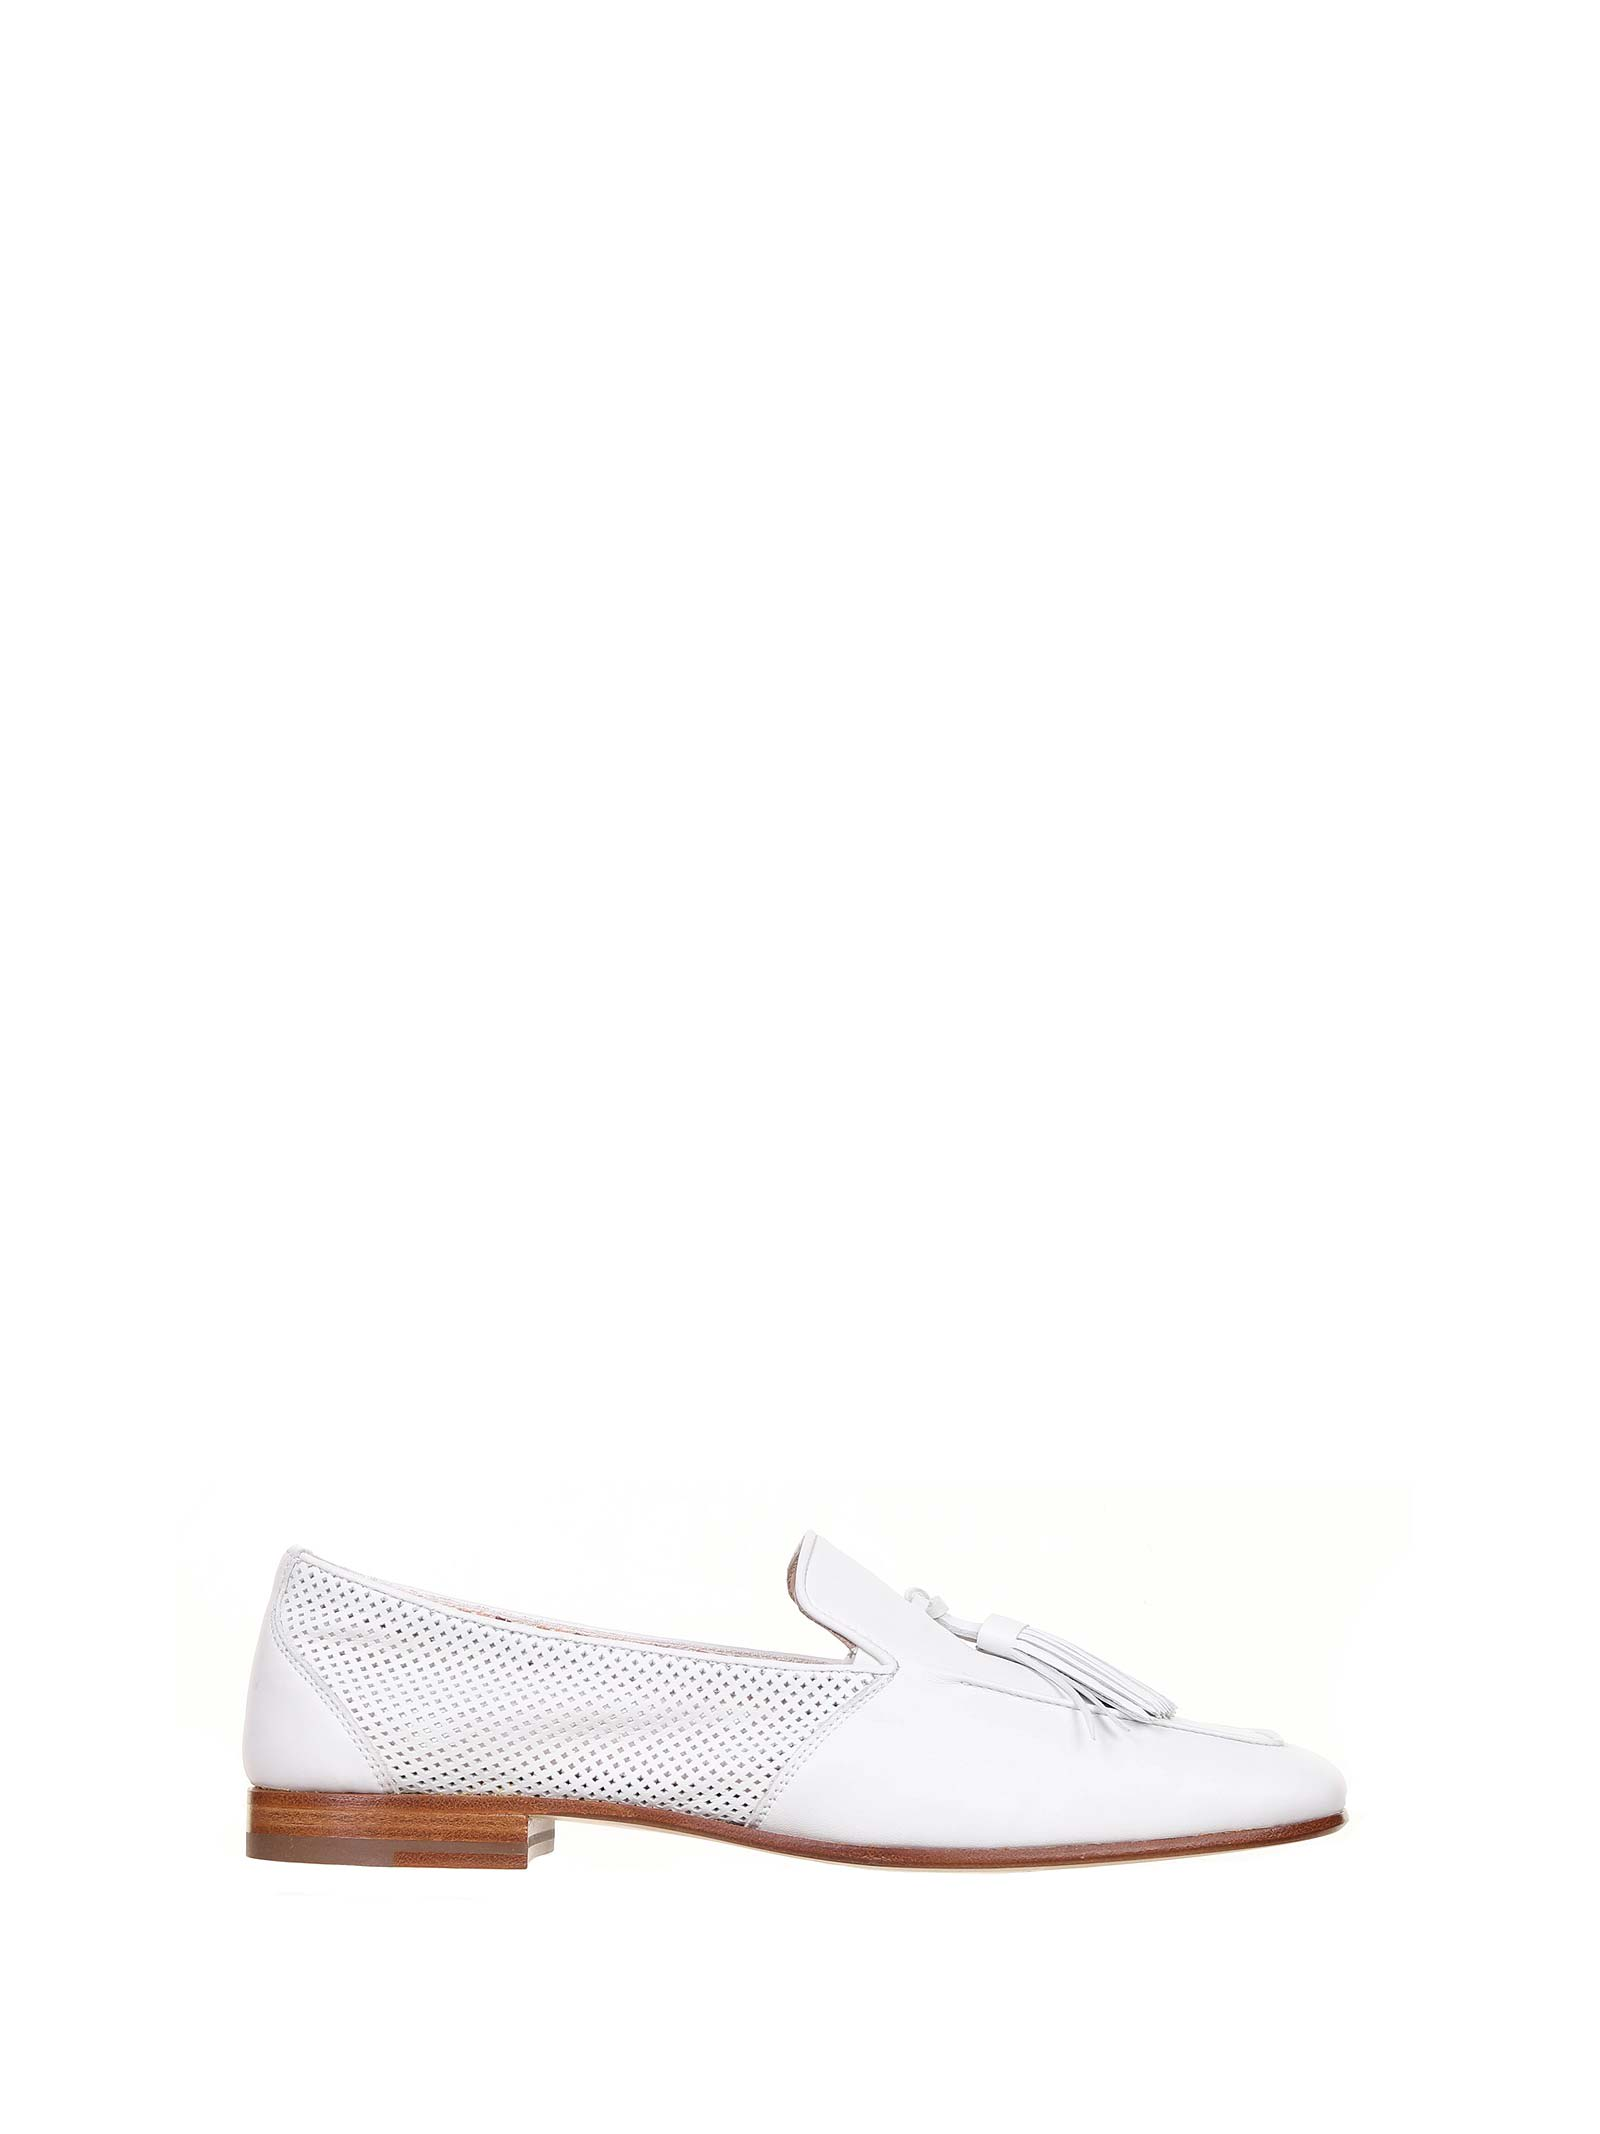 Loafer In White Leather